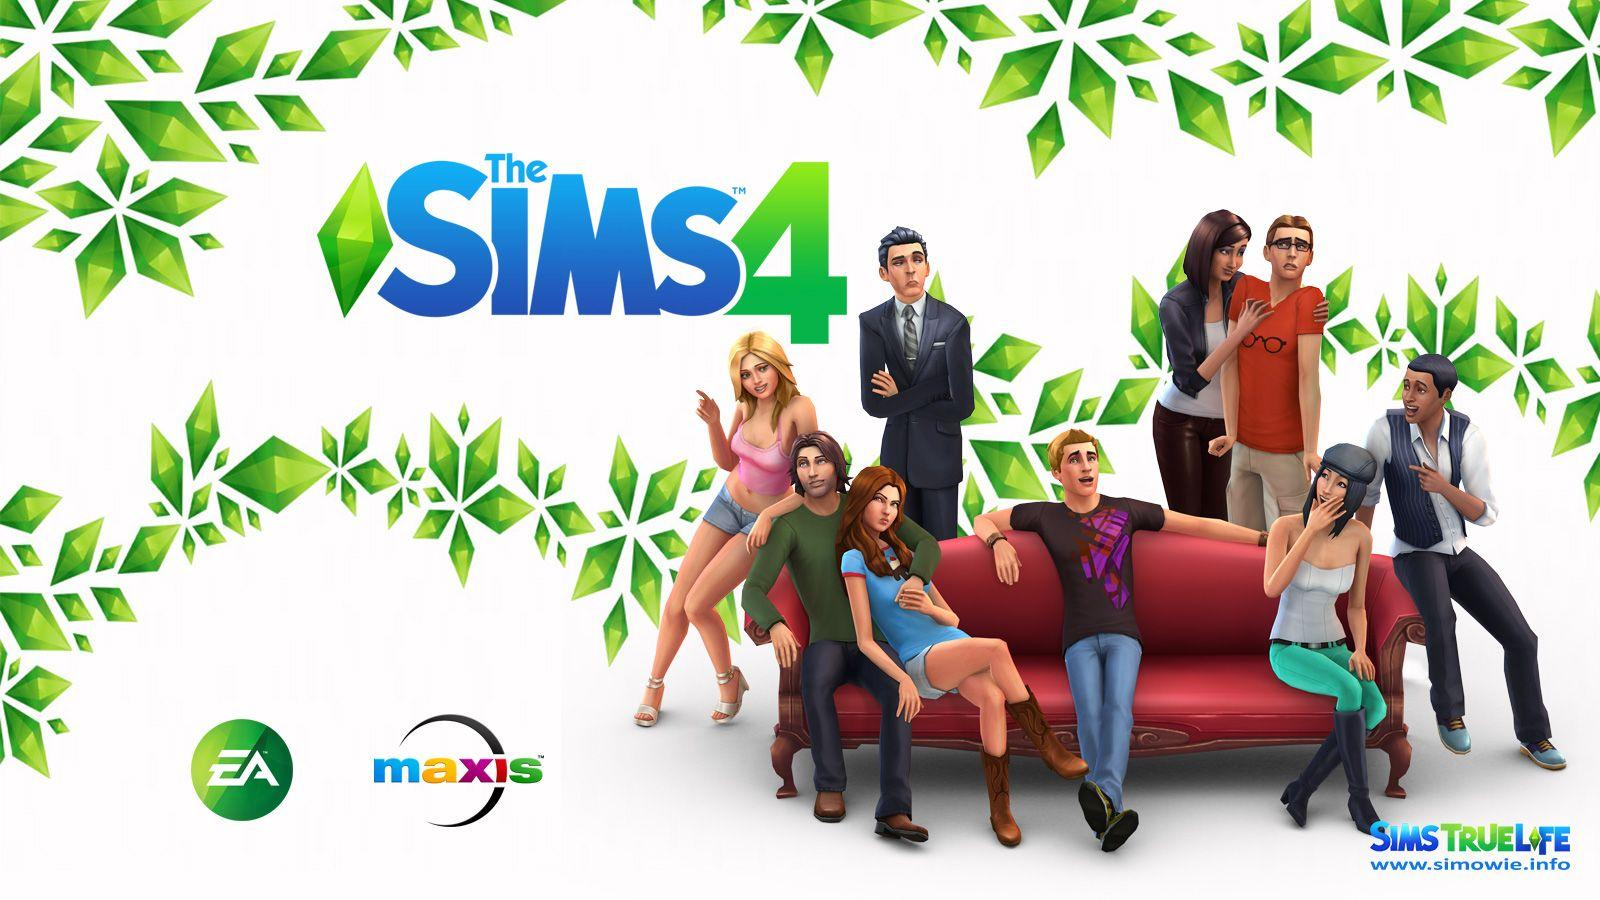 The Sims 4 Wallpapers Image Picture